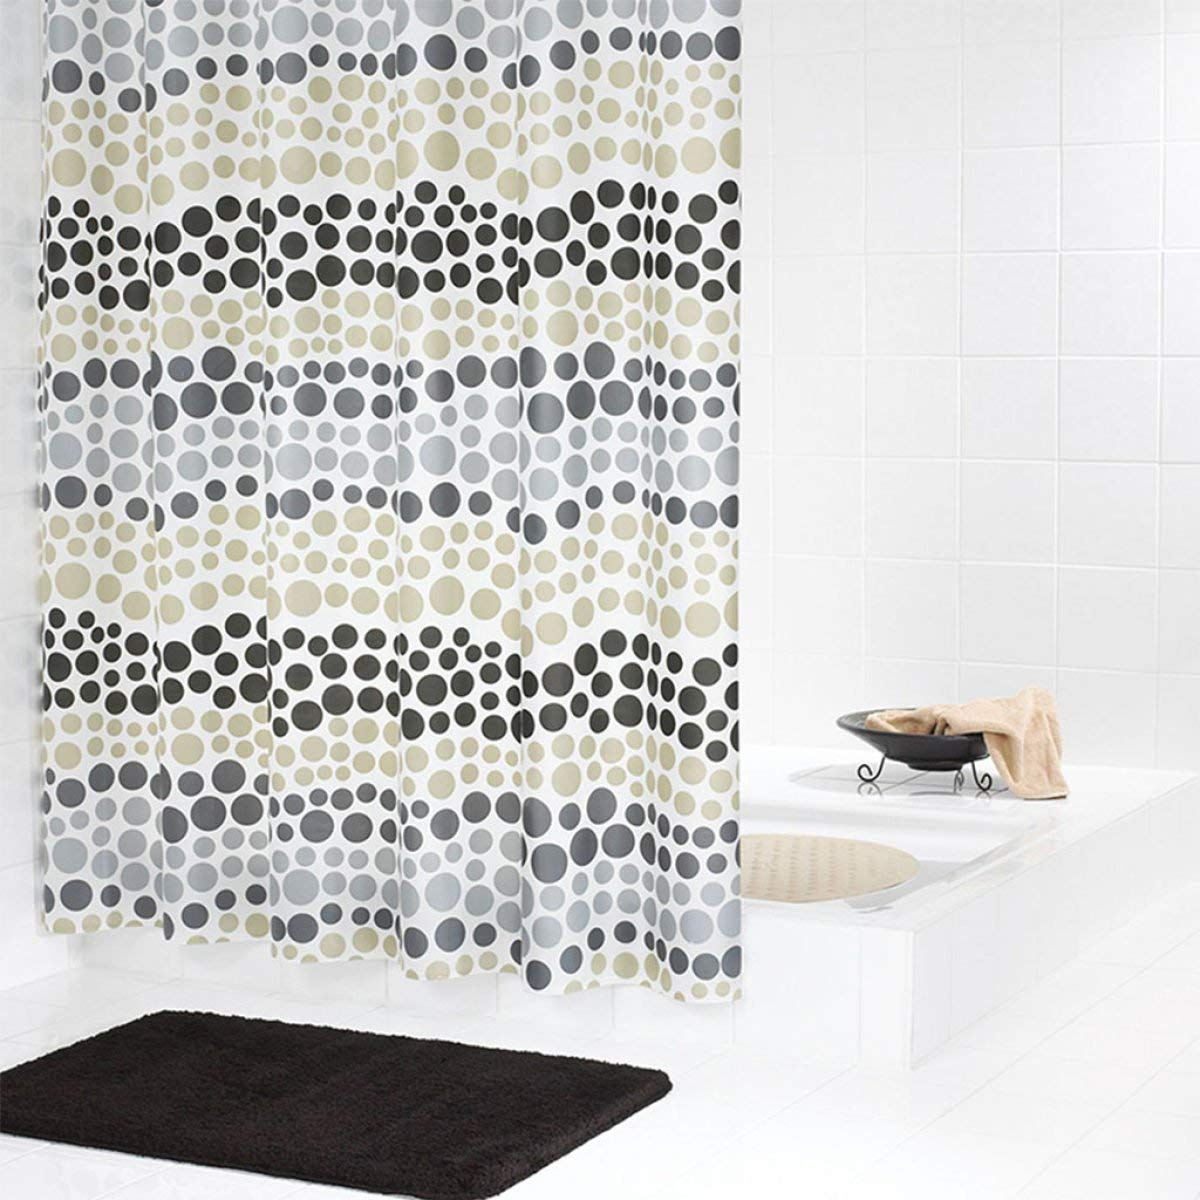 Der Translucent Matte Curtain Padded EVA Bathroom Free Perforated Shower Curtain Waterproof and Anti-Mold Plastic Ring Bathroom Accessories (Color : C)